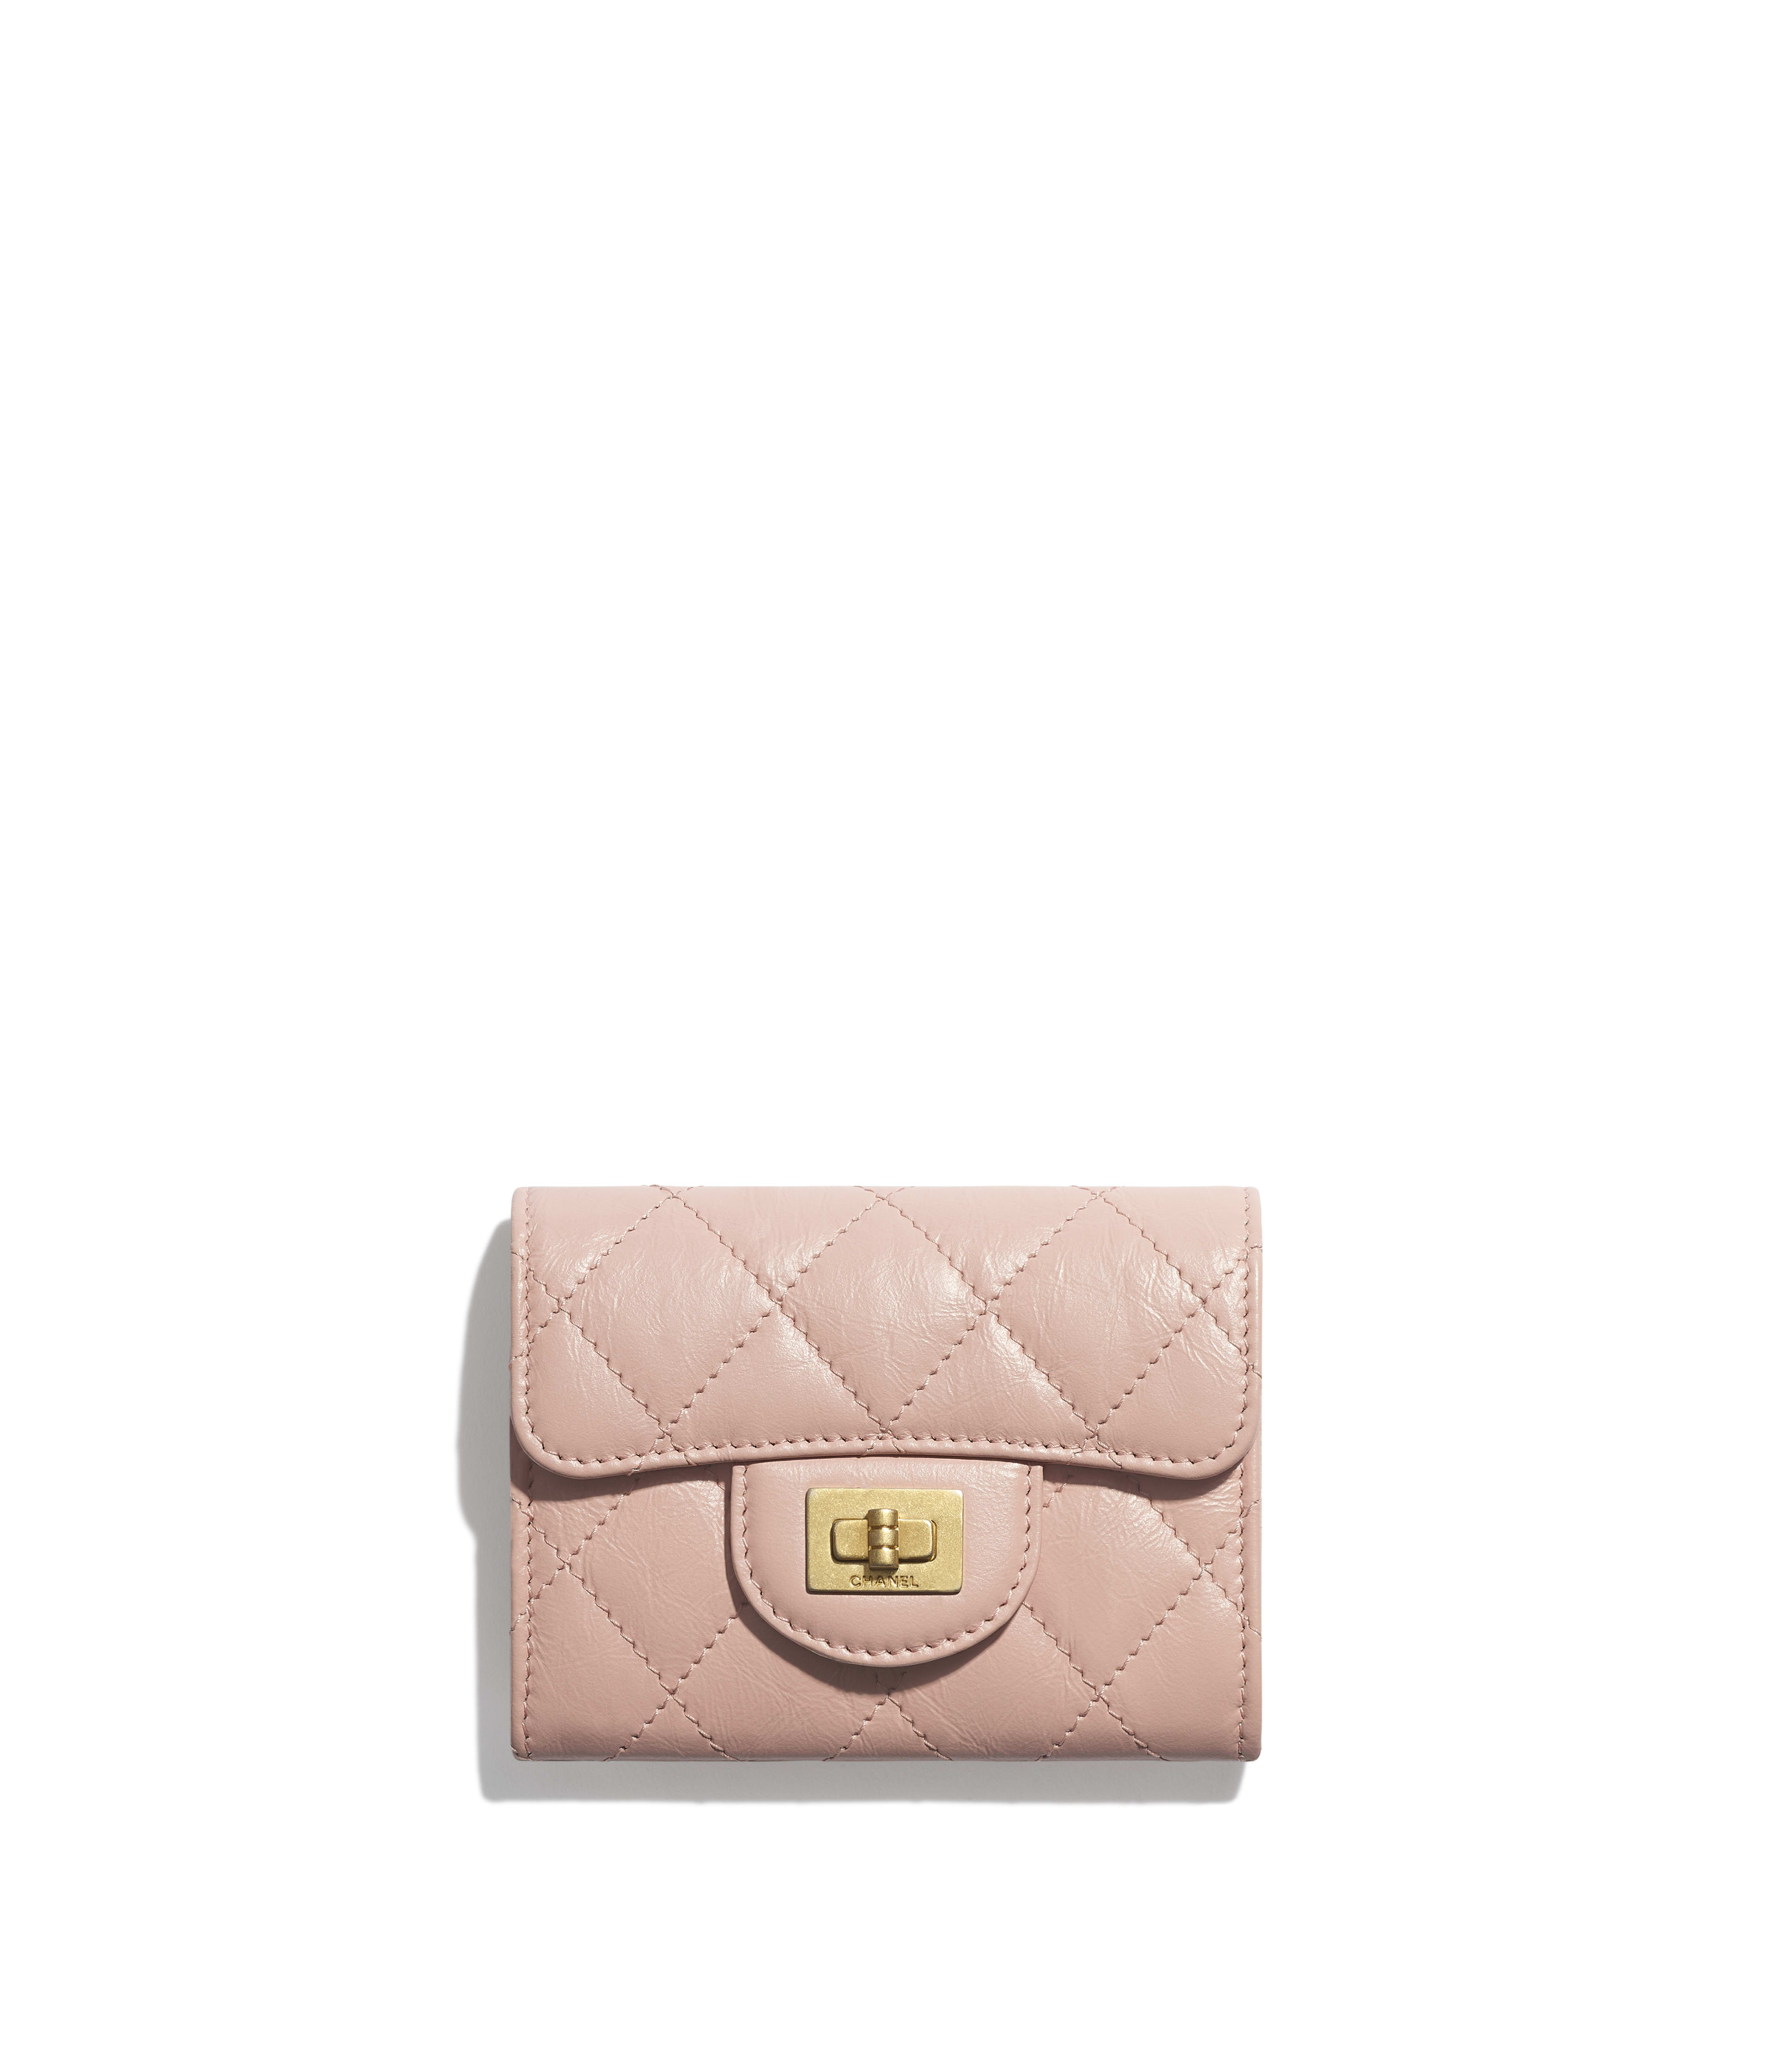 9e38fe2f3c12 2.55 Flap Coin Purse Aged Calfskin & Gold-Tone Metal, Light Pink Ref.  A80234Y04634N0430